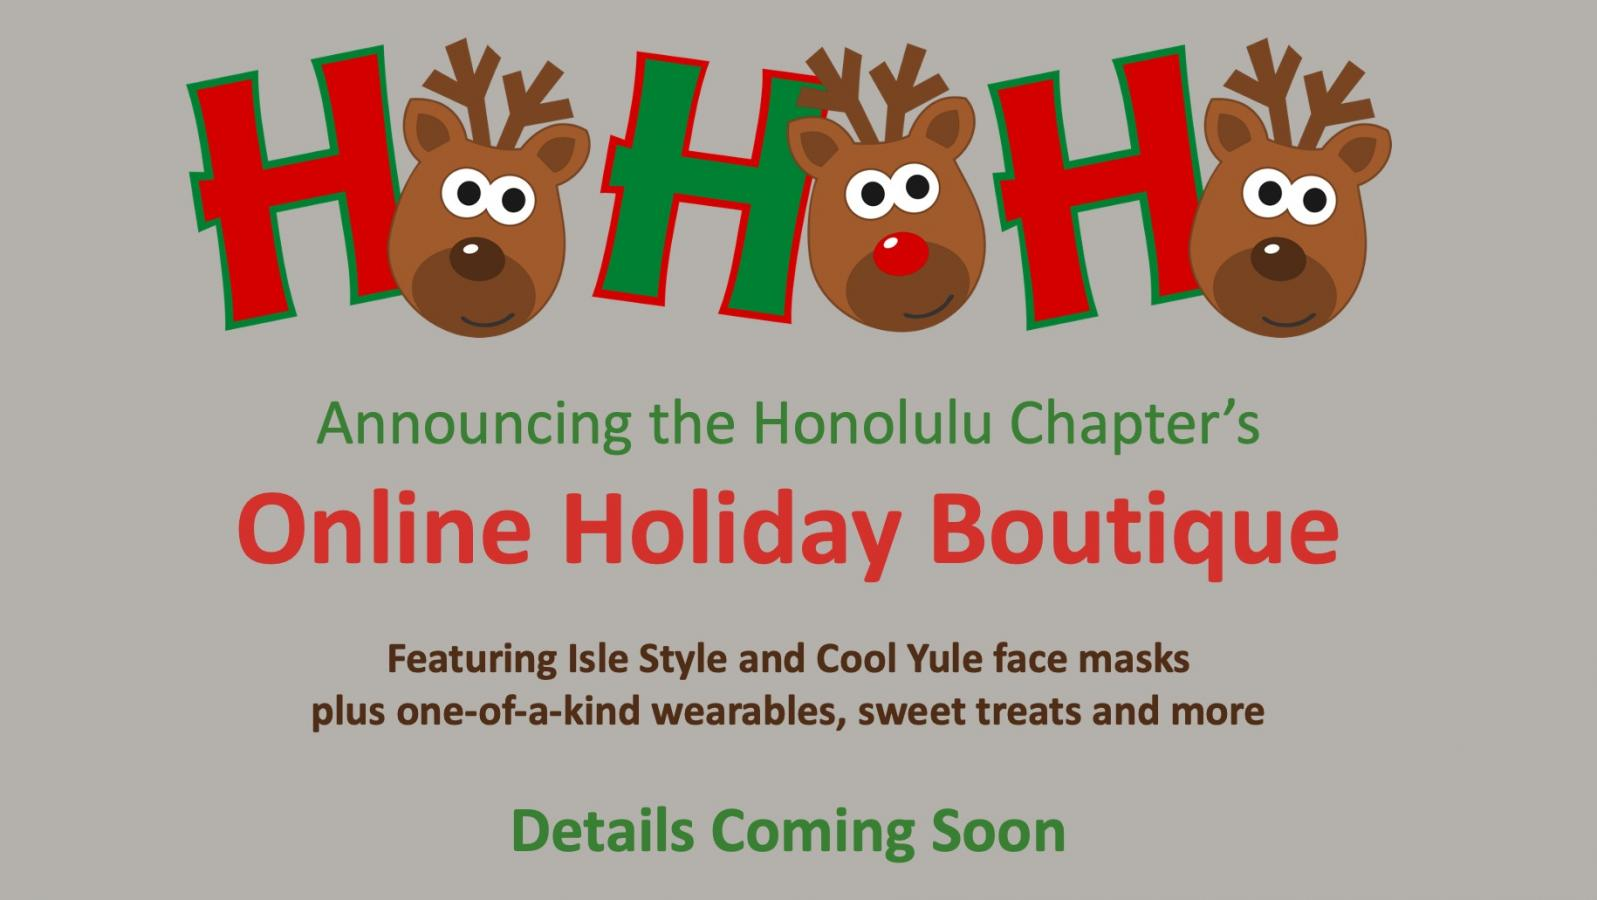 Honolulu Chapter Holiday Boutique sign